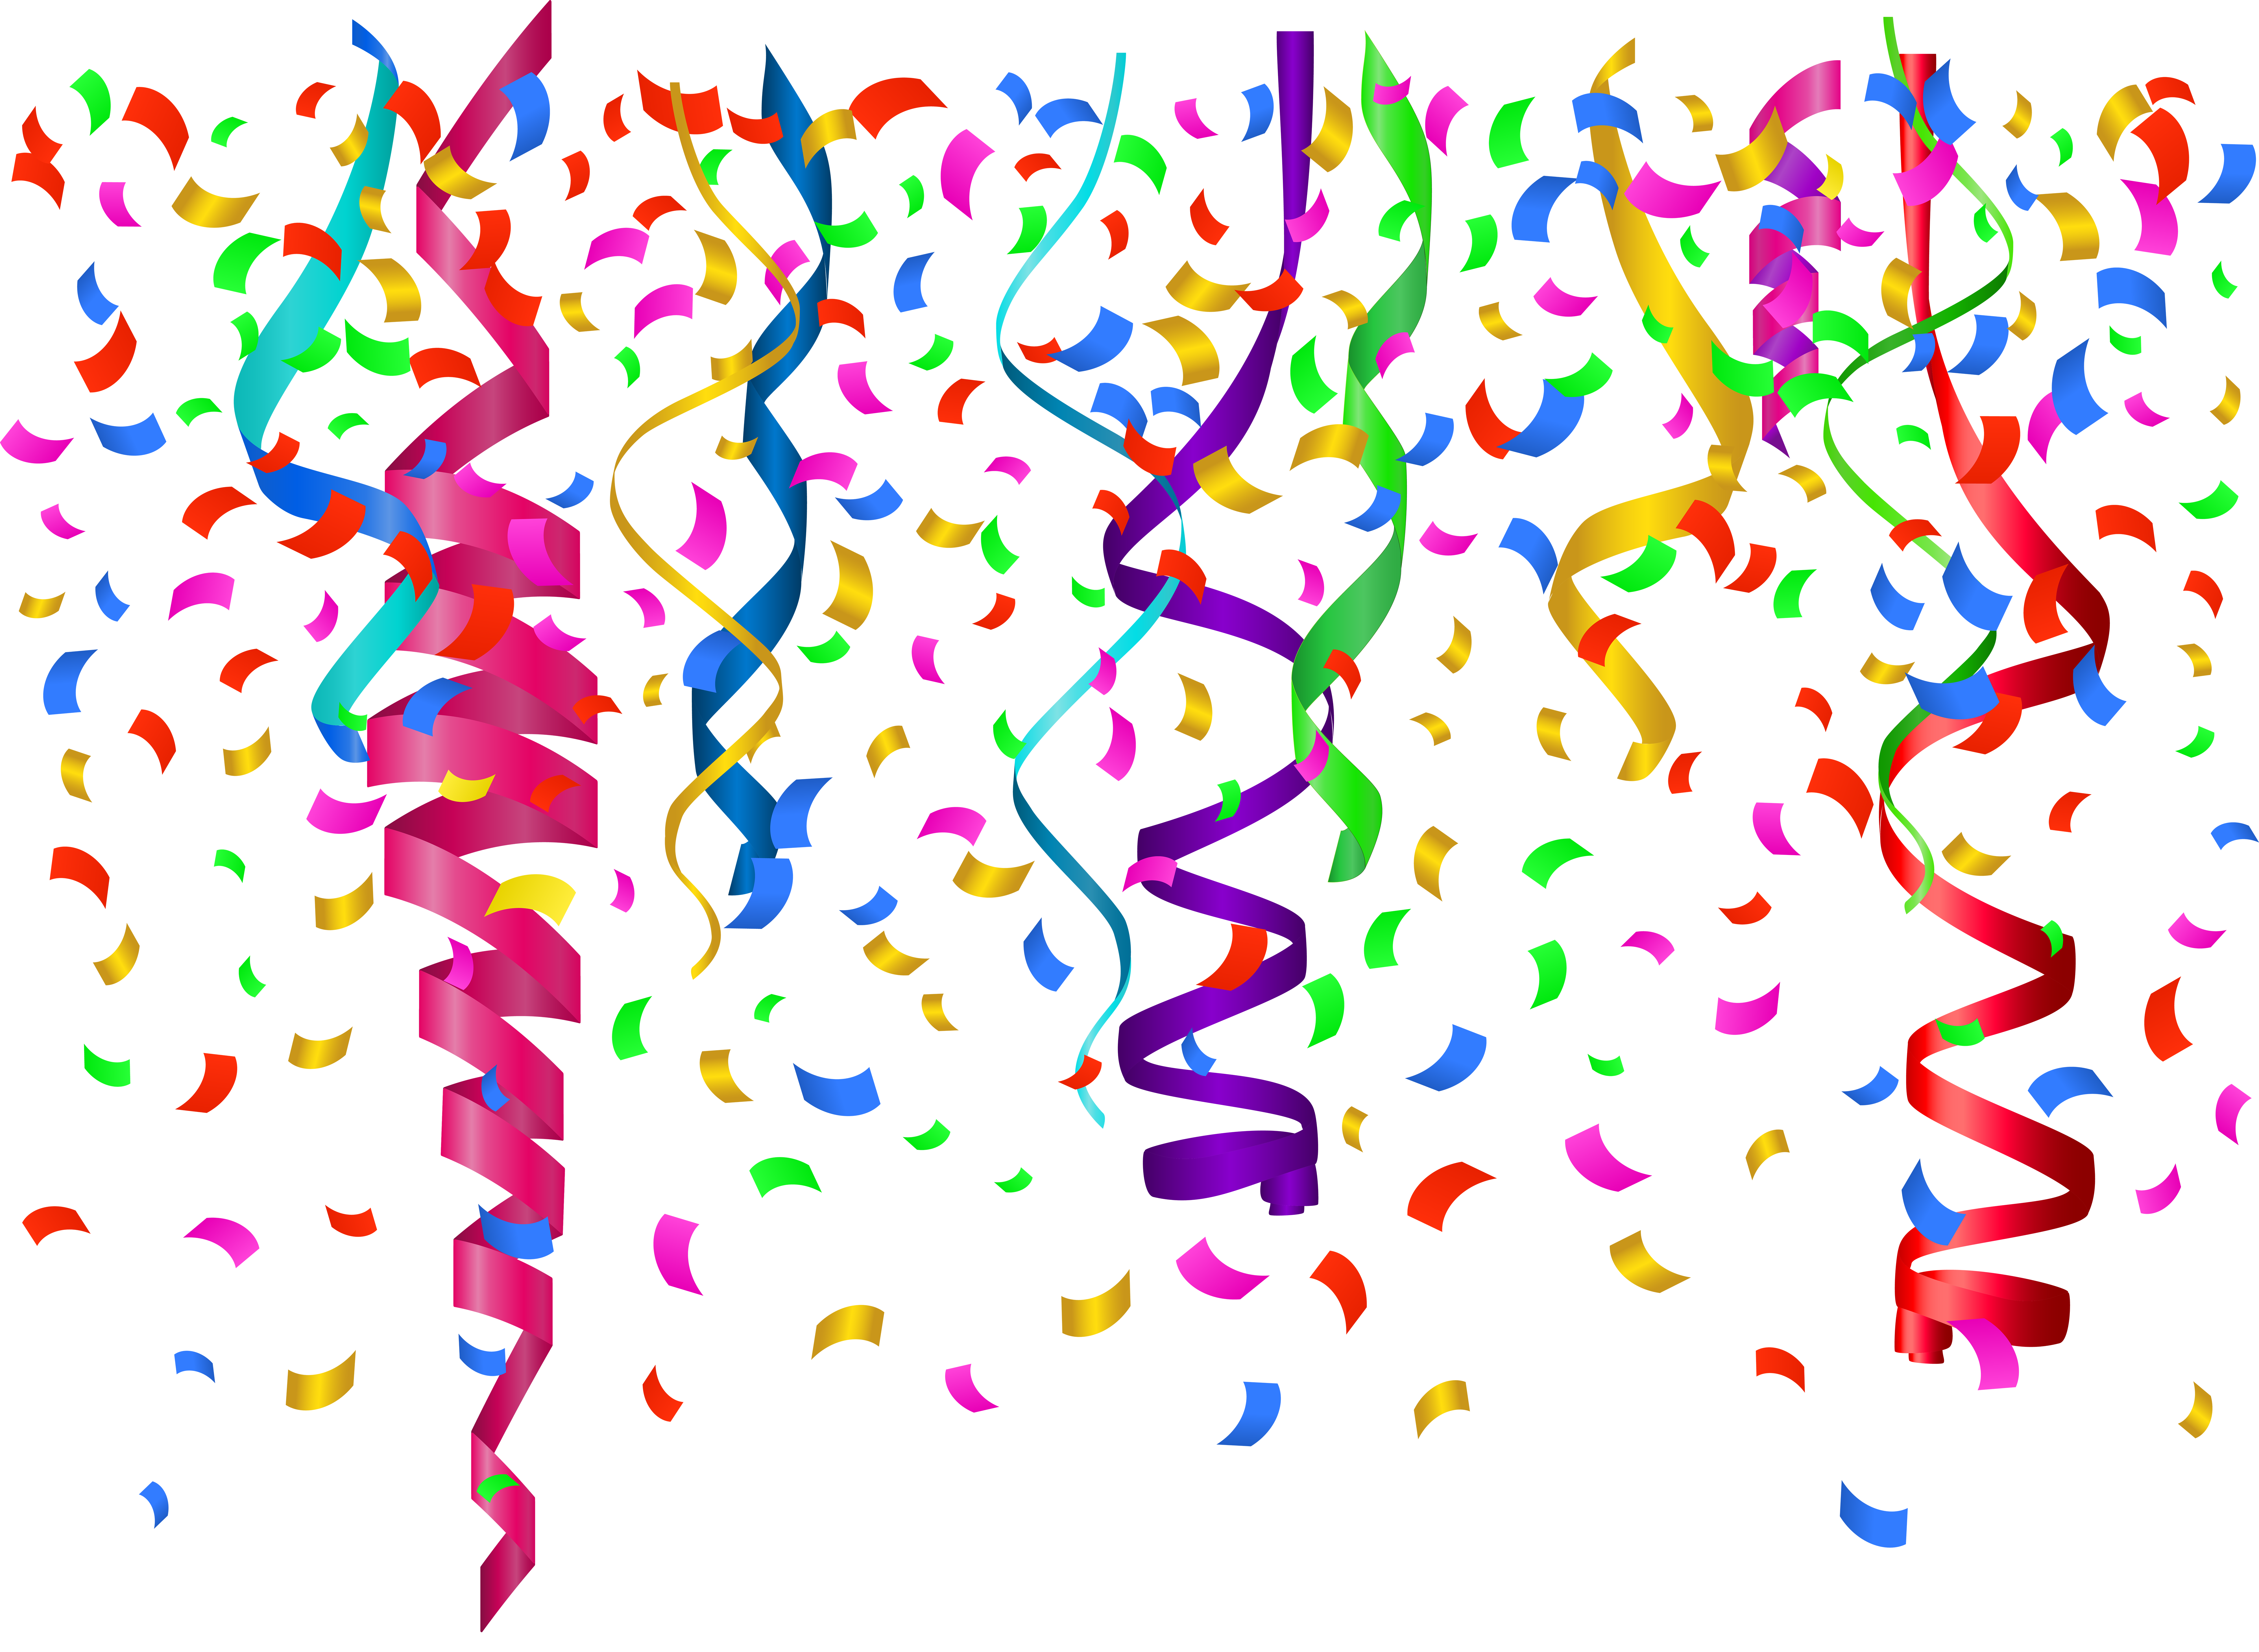 Happy birthday confetti png. Transparent clip art image